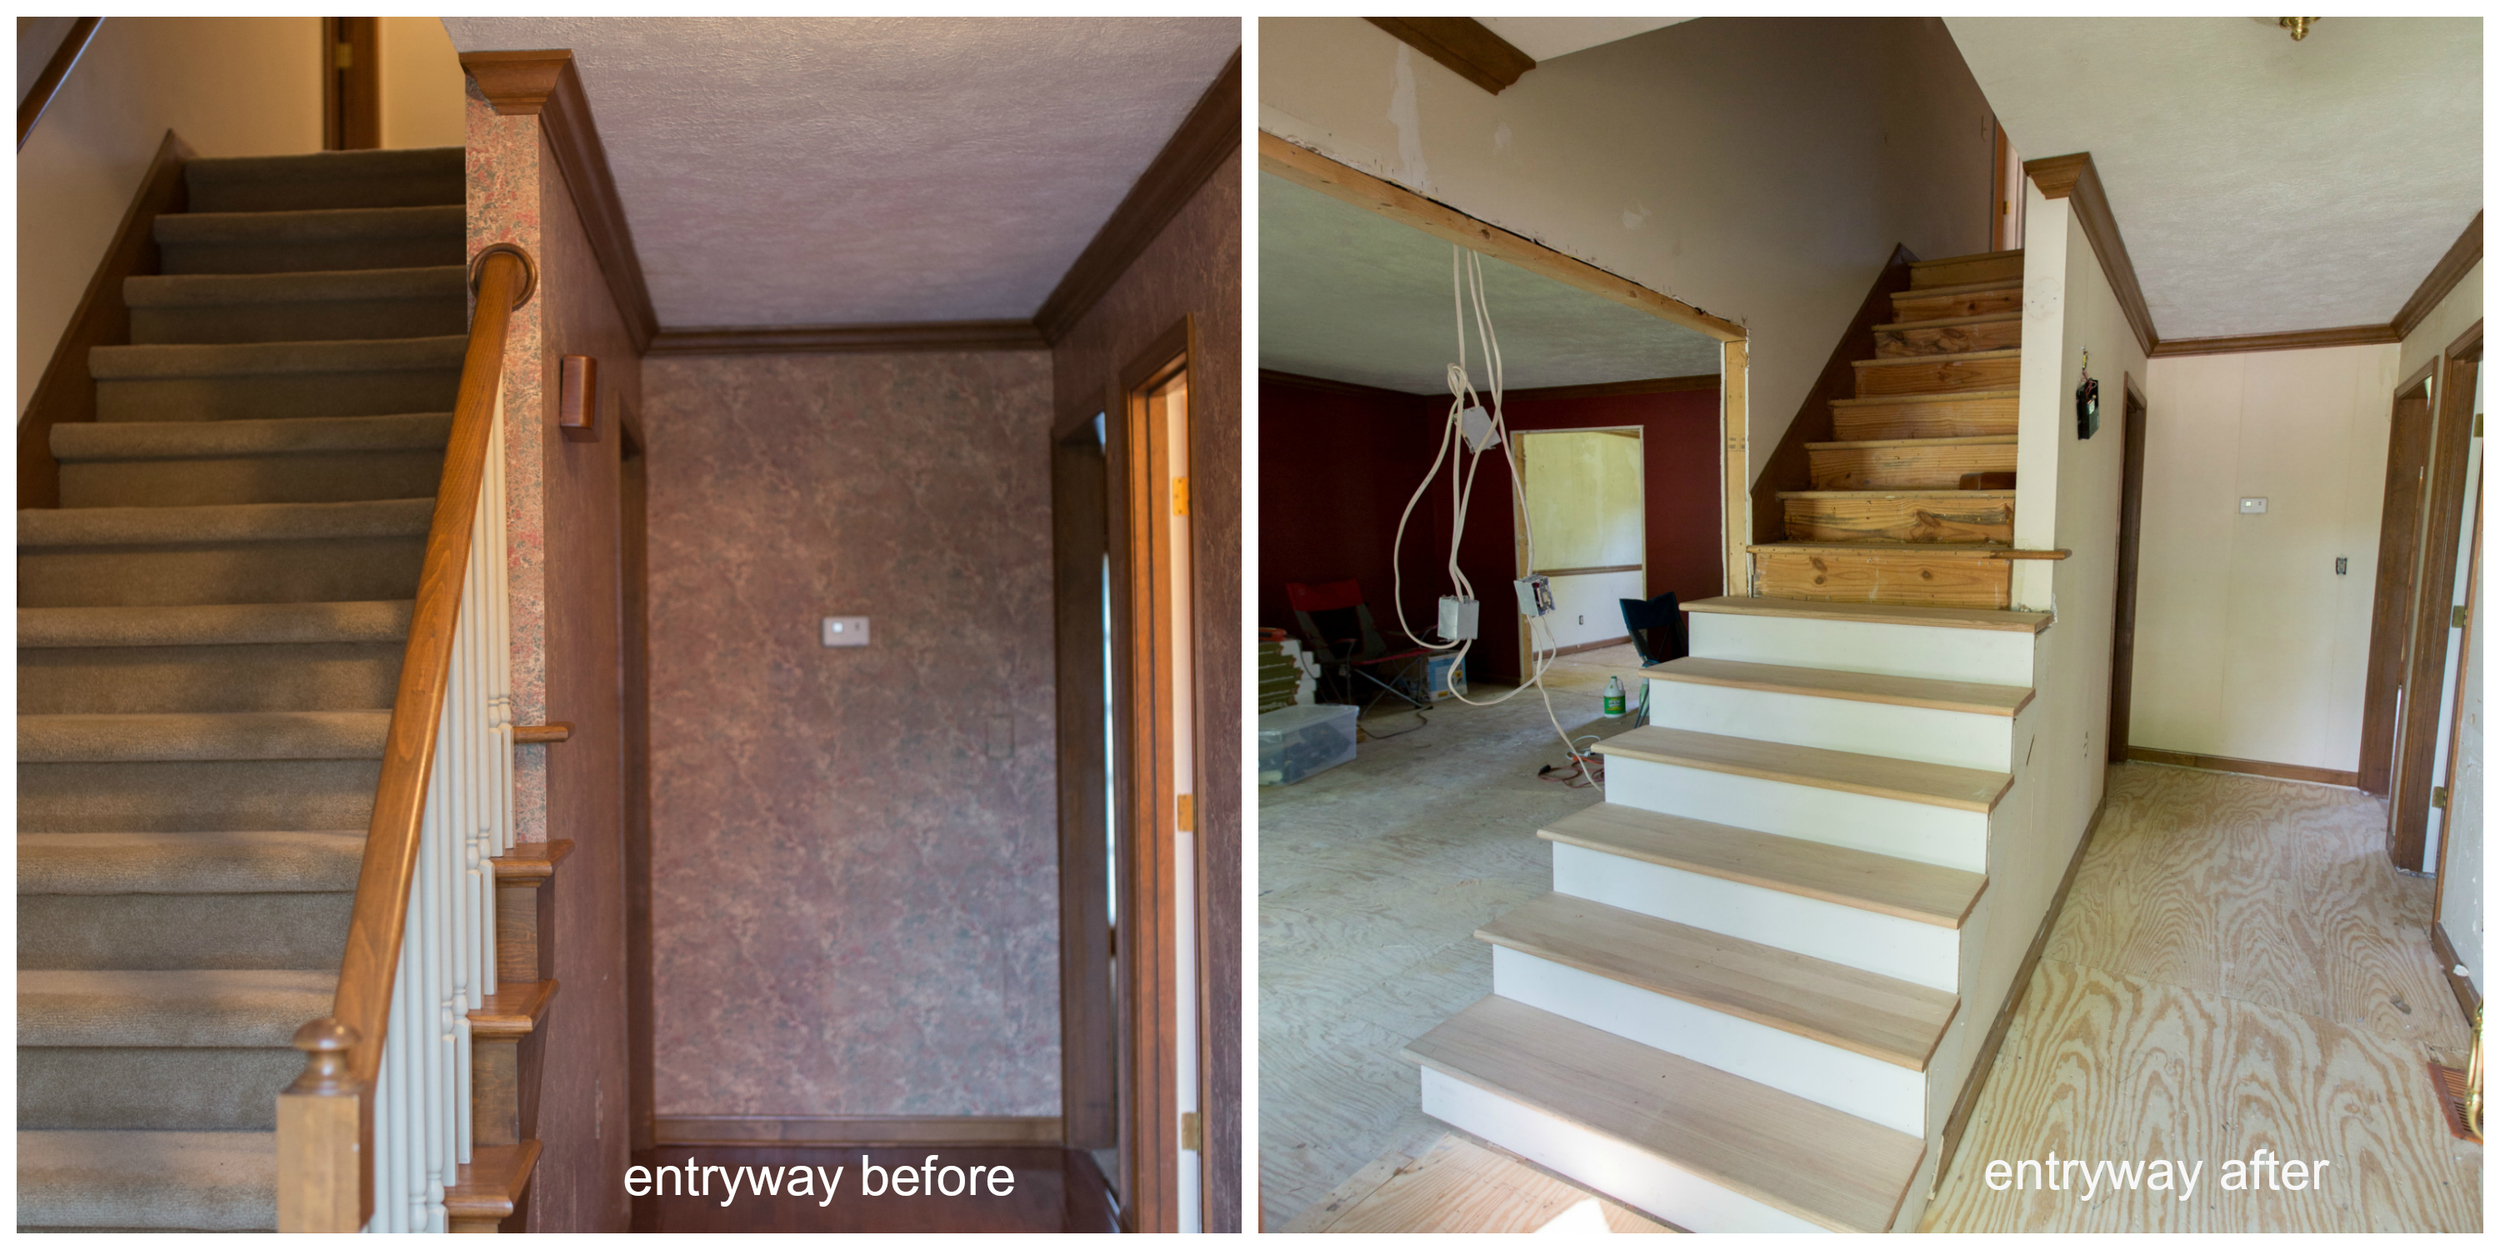 Our first home renovation project opening the entryway and new stairs